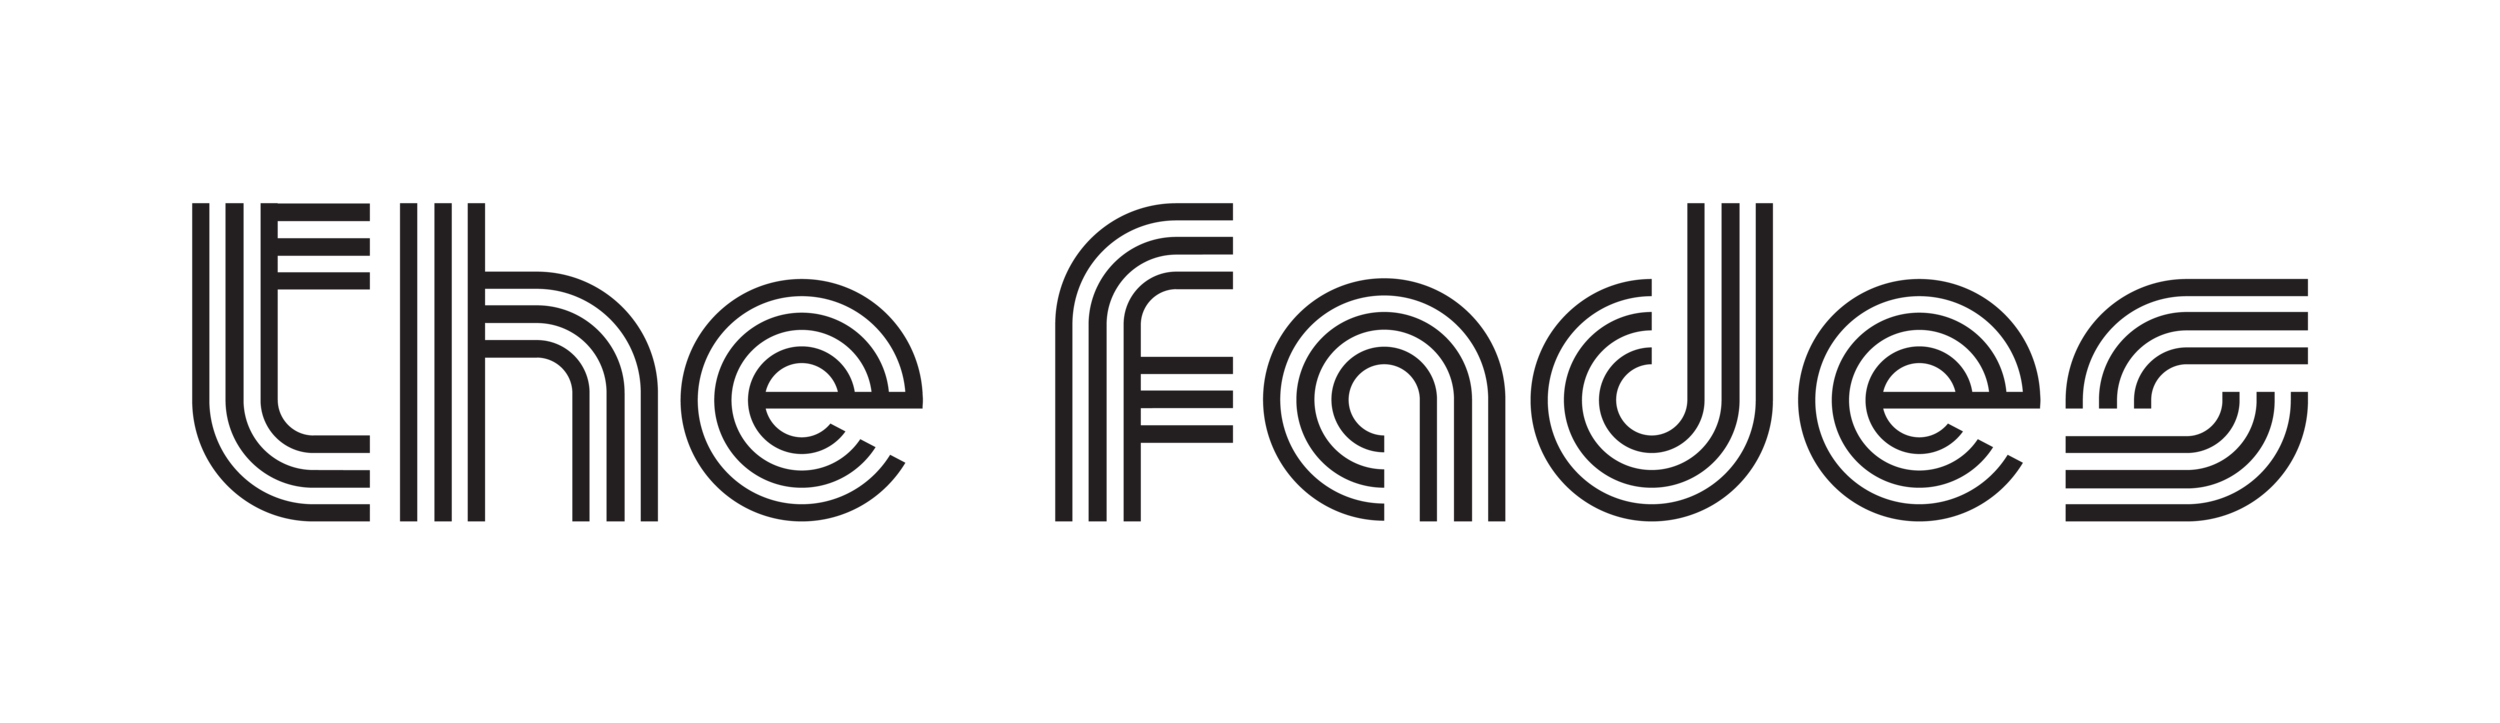 The-Fades_Logo-Black.png